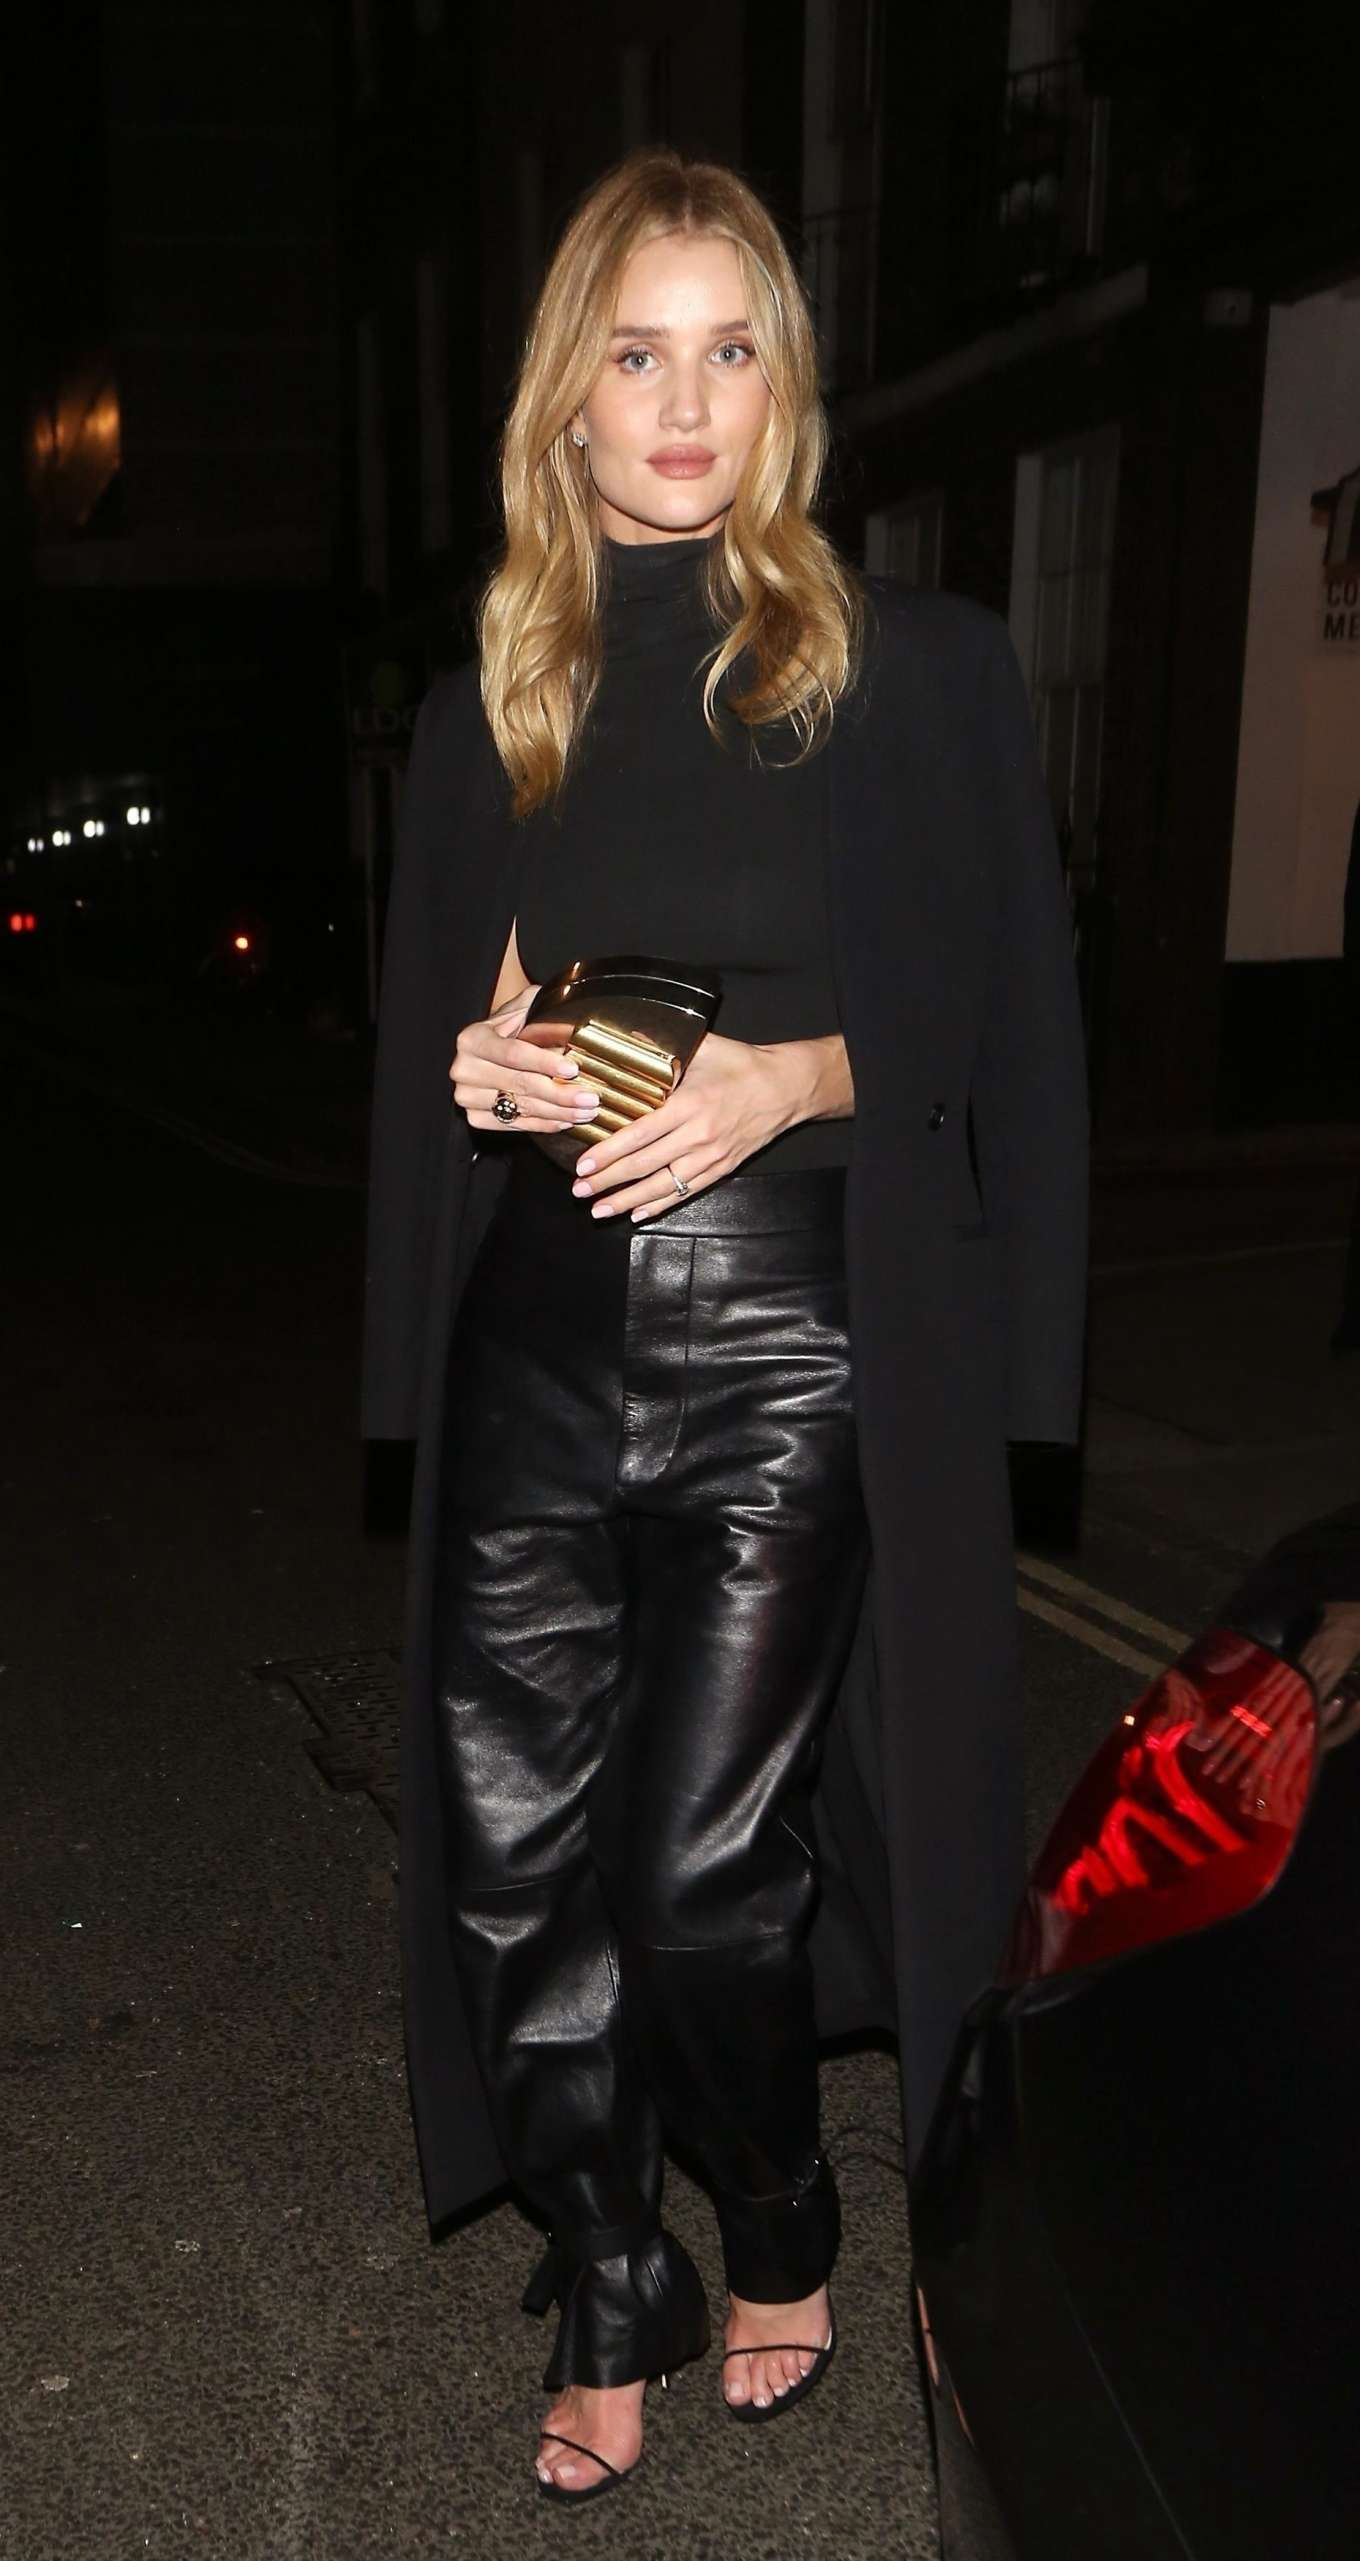 Rosie Huntington Whiteley 2019 : Rosie Huntington Whiteley in Leather Pants-13